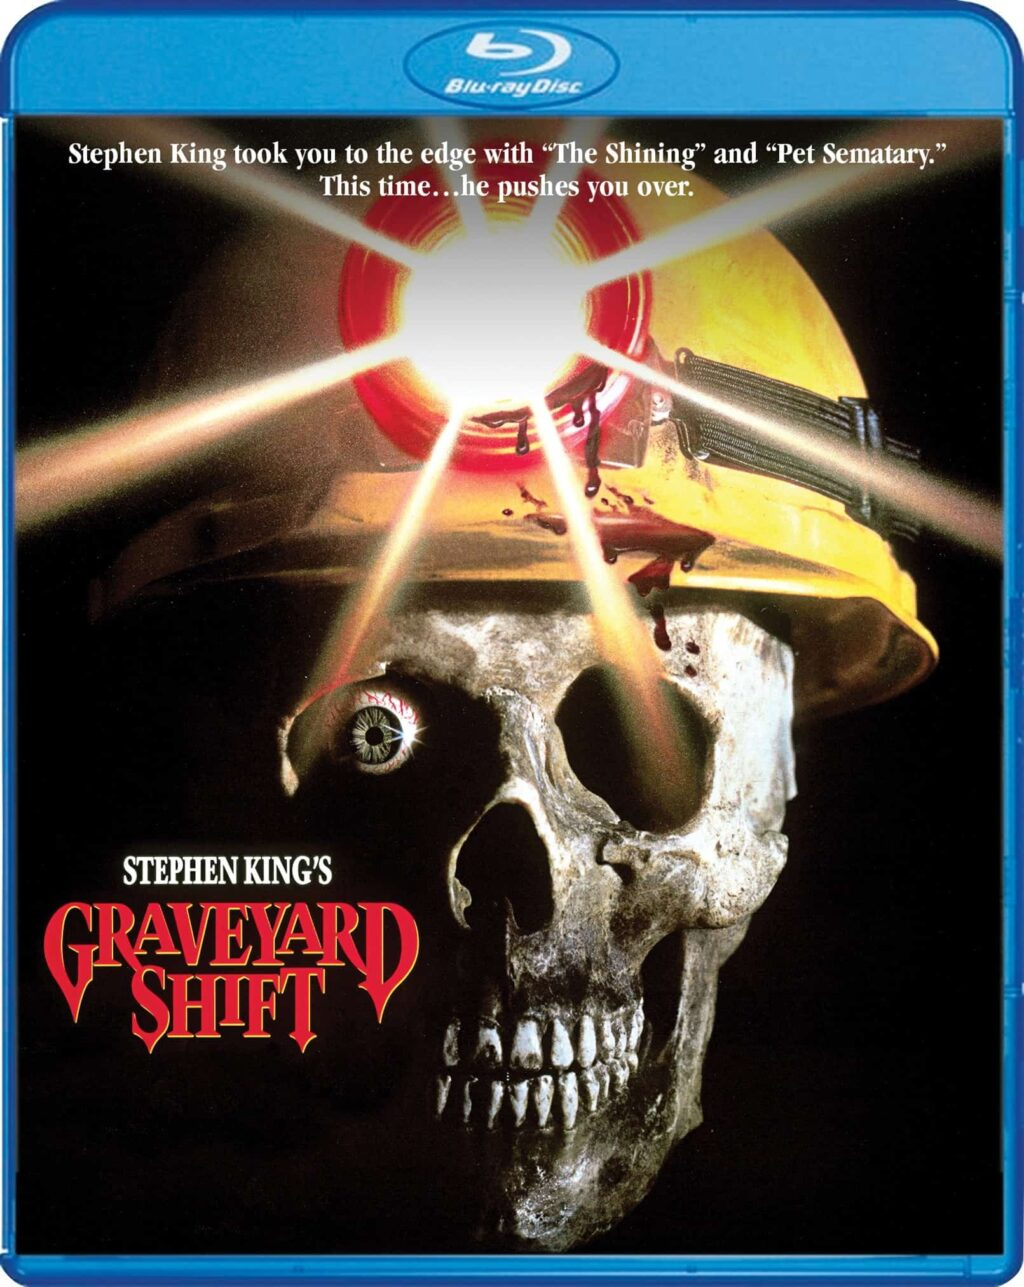 Graveyard Shift Blu ray 1024x1287 - Scream Factory Announces GRAVEYARD SHIFT Collector's Edition Special Features